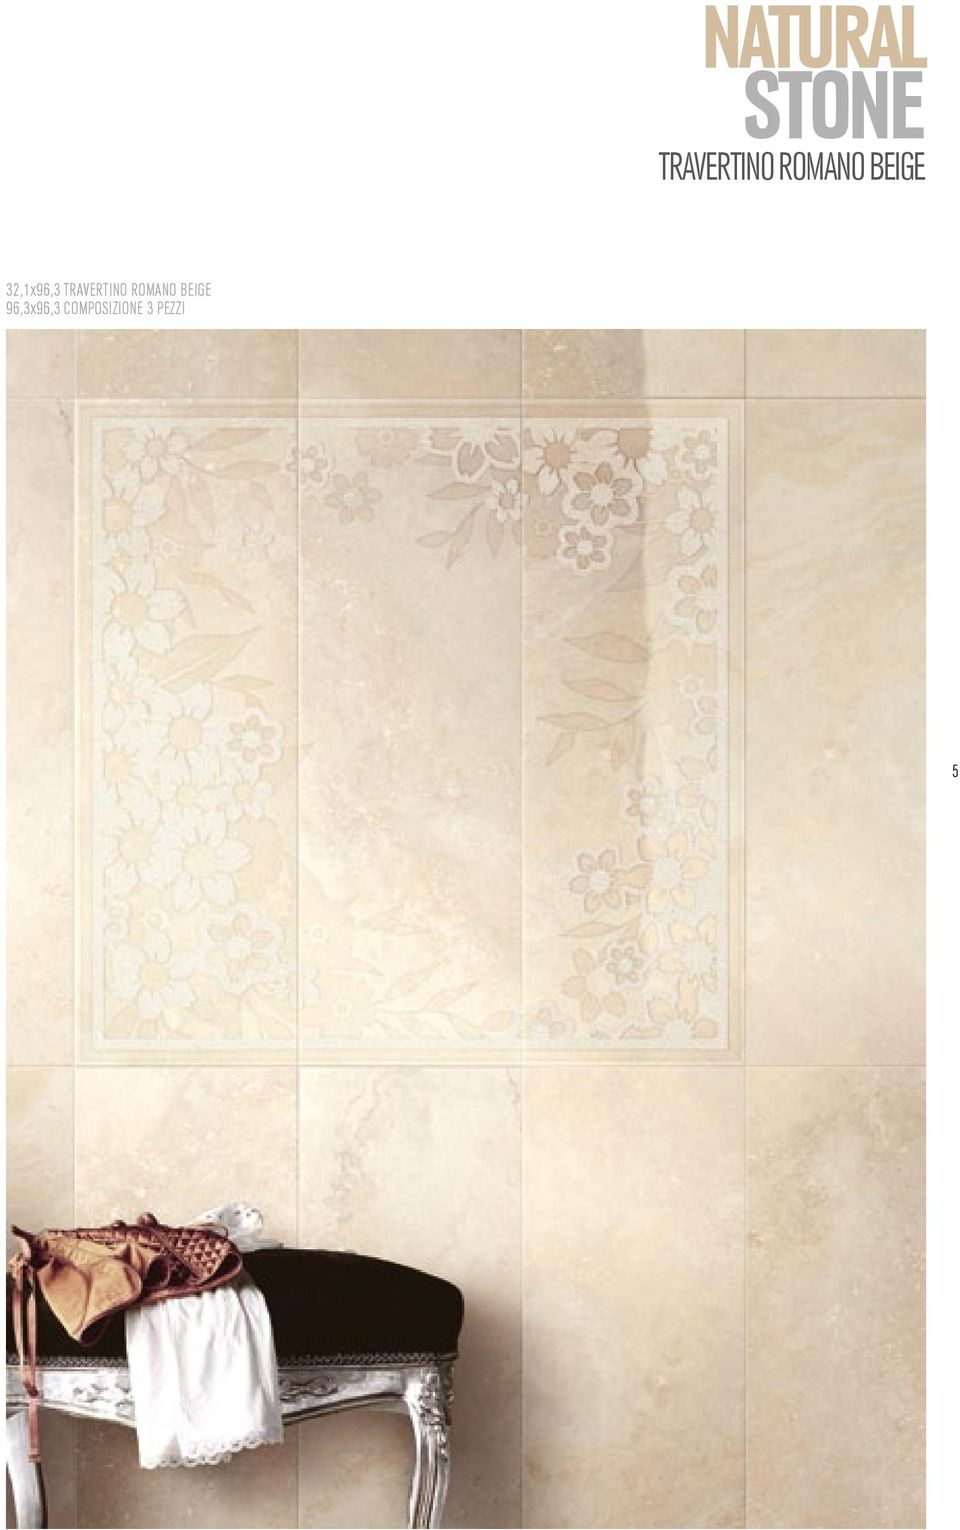 TRAVERTINO ROMANO BEIGE